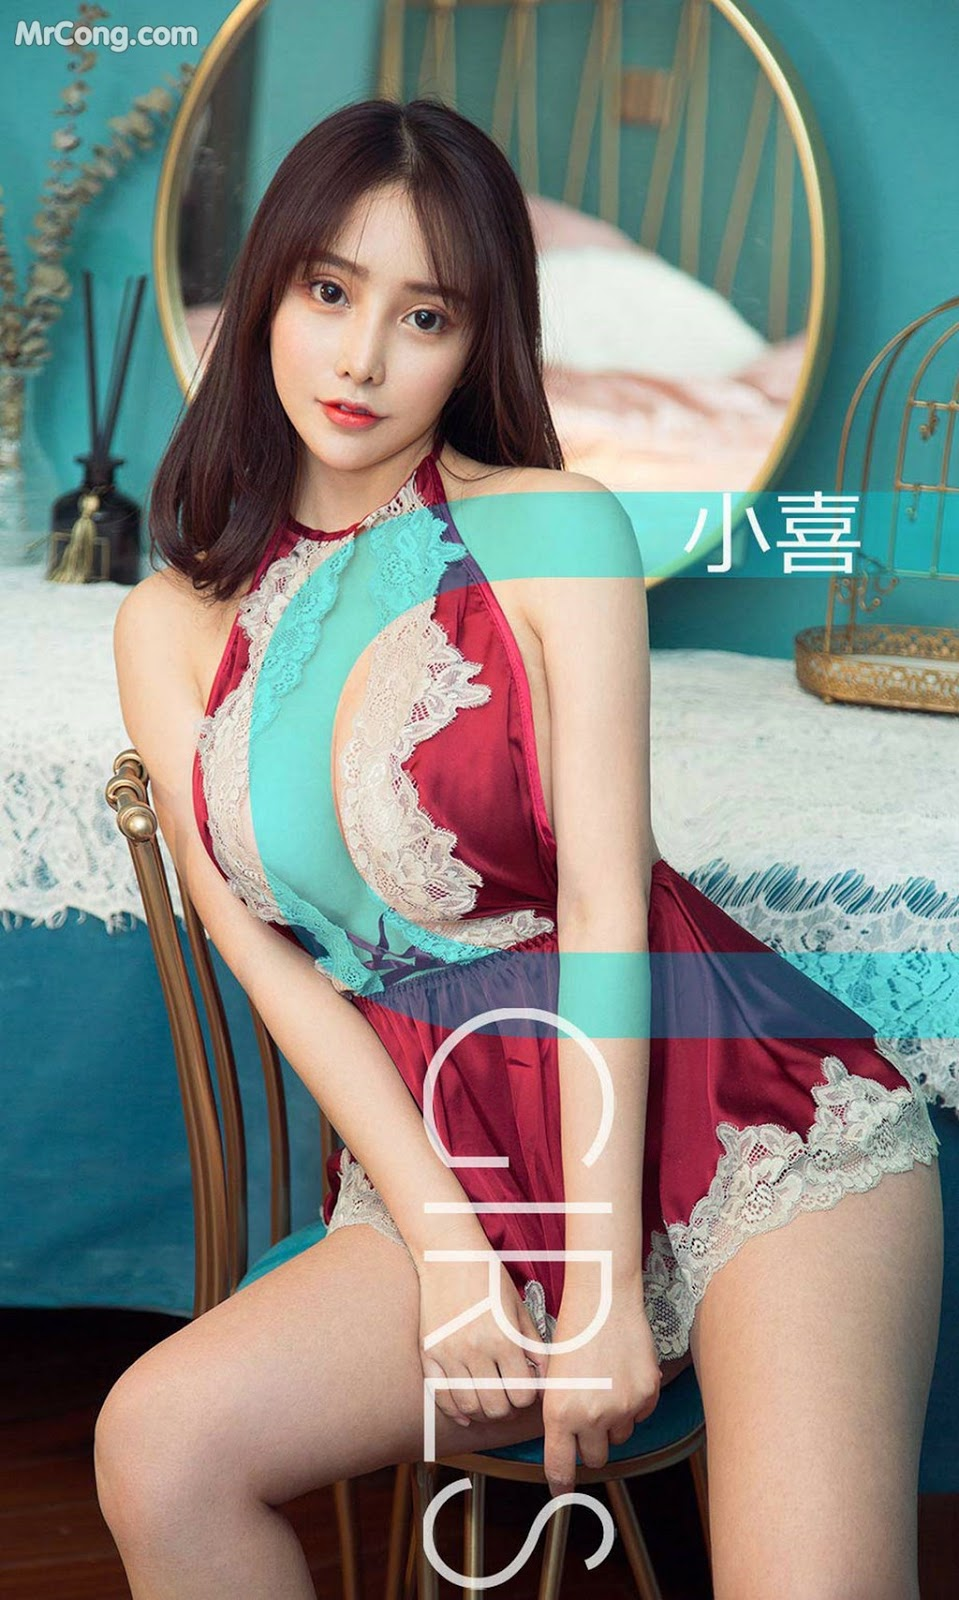 Image UGIRLS-Ai-You-Wu-App-No.1393-Xiao-Xi-MrCong.com-001 in post UGIRLS – Ai You Wu App No.1393: Người mẫu Xiao Xi (小喜) (35 ảnh)